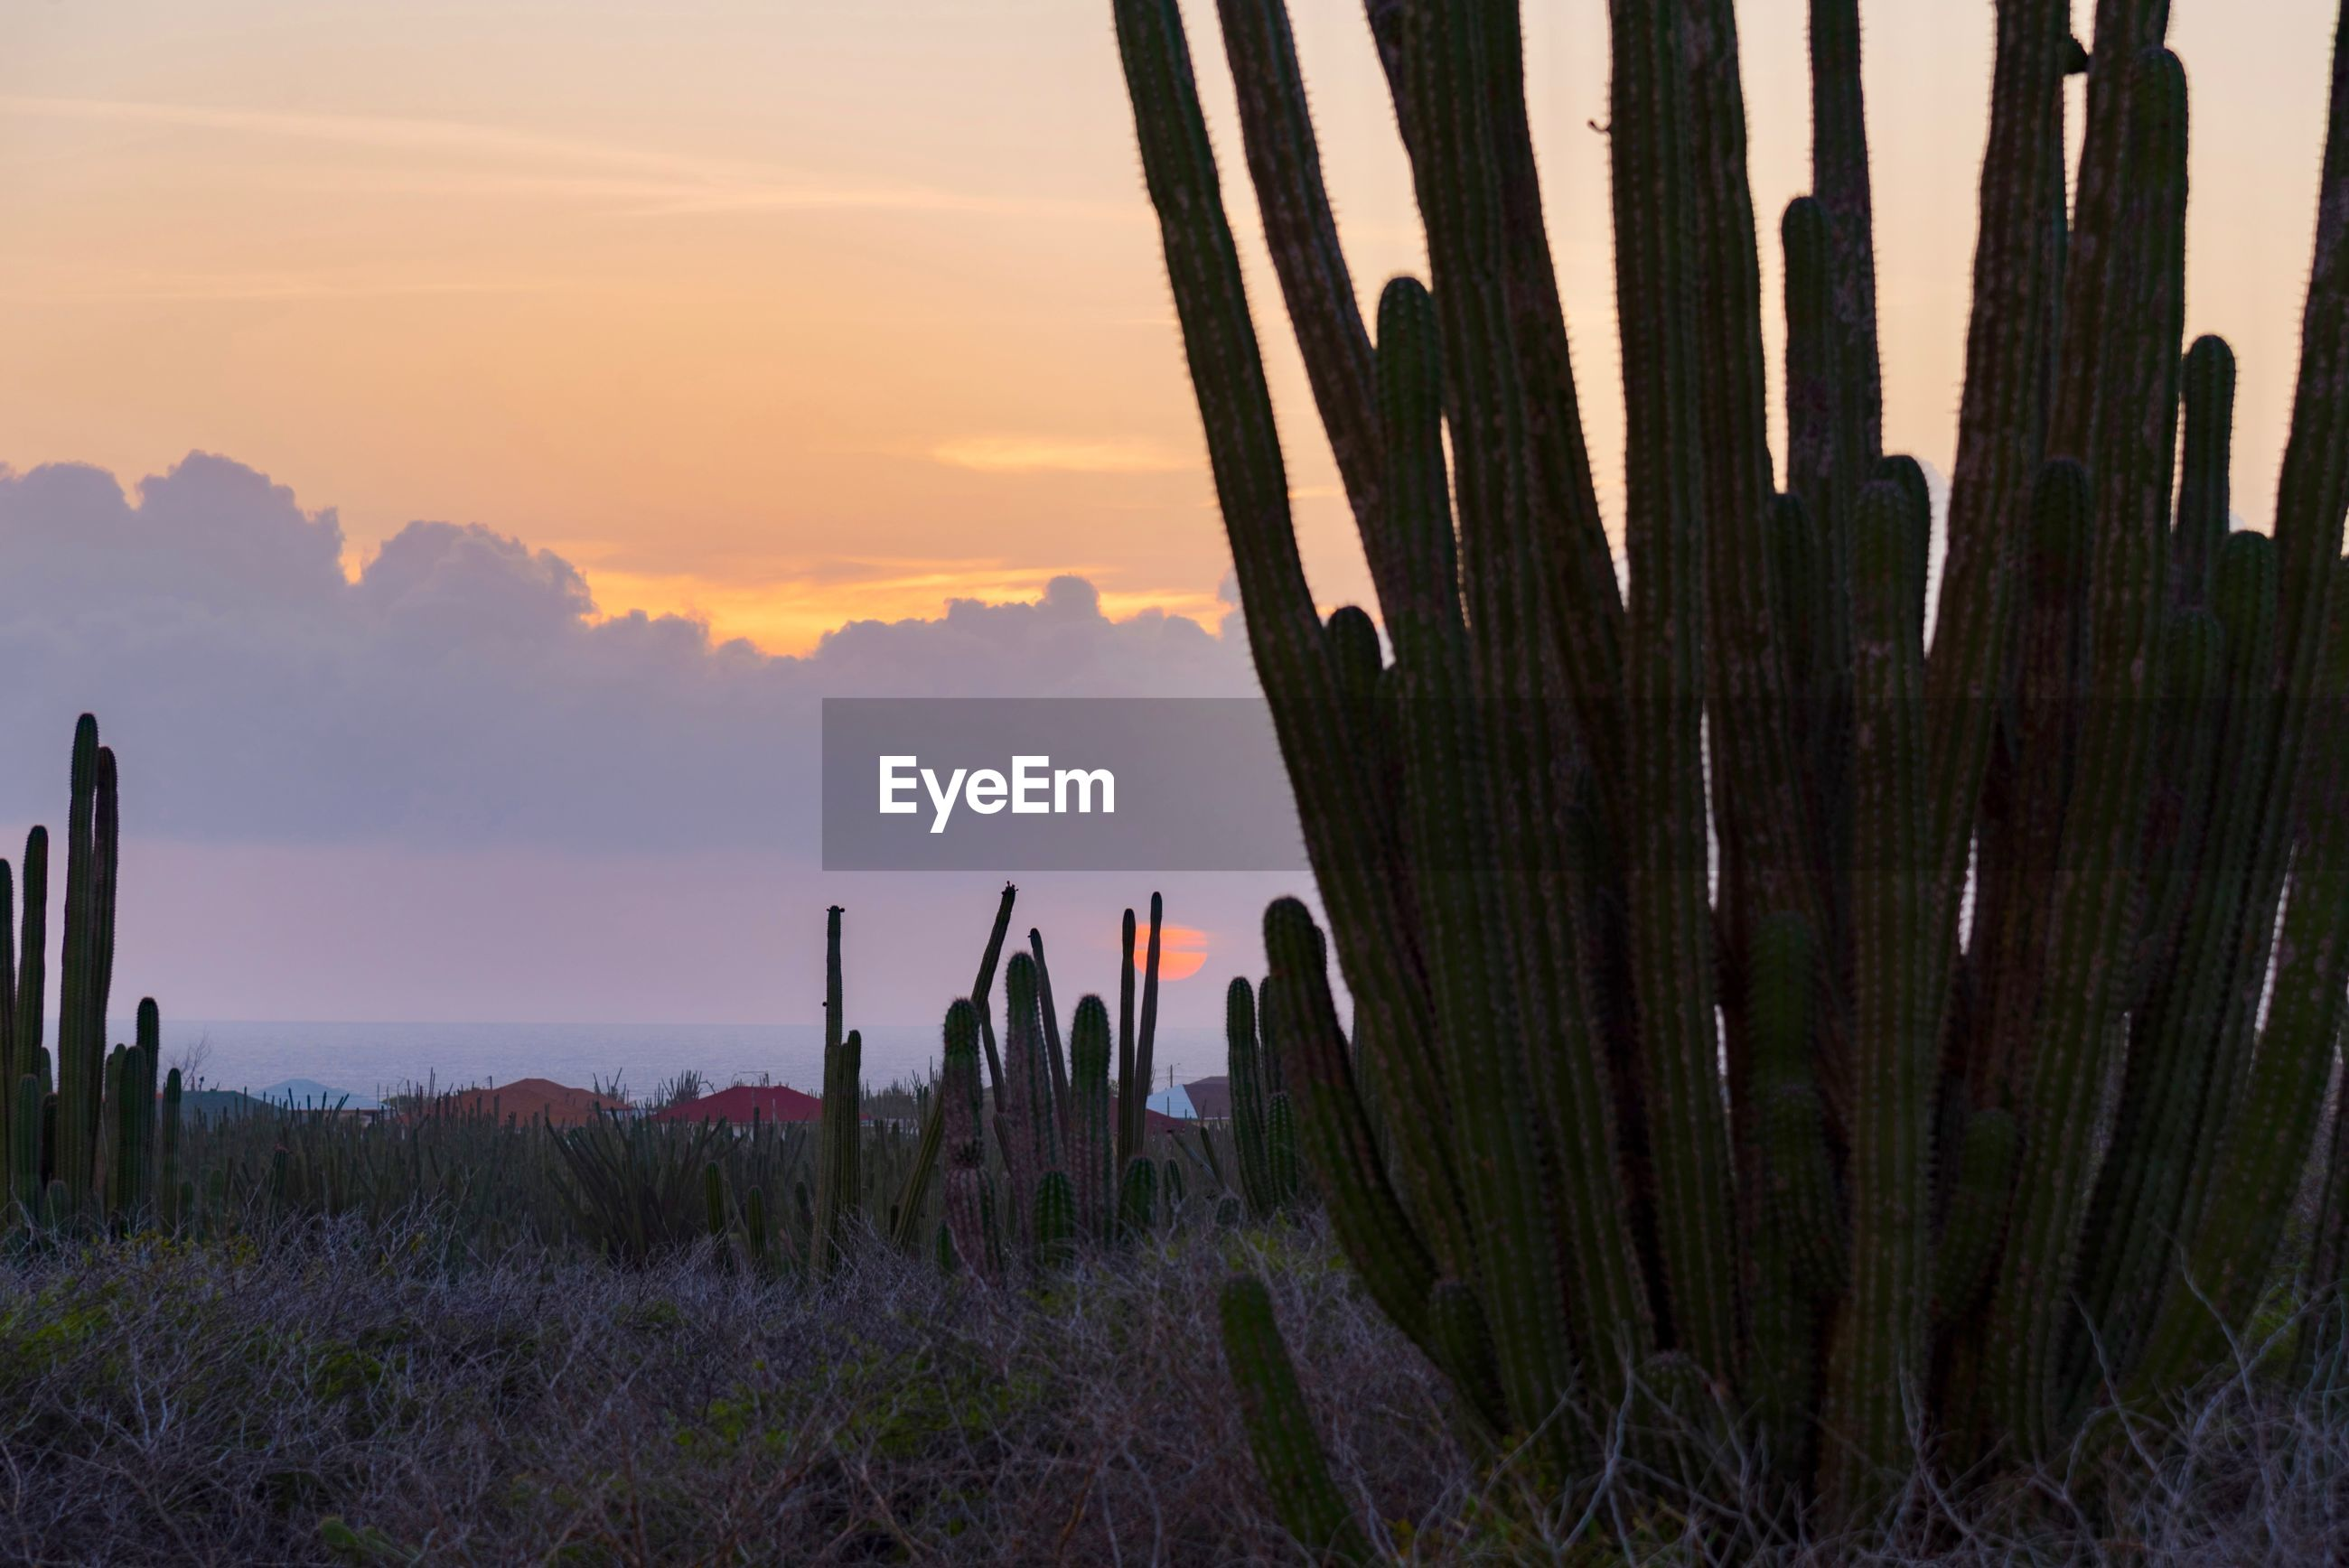 Cactus on land against sky during sunset